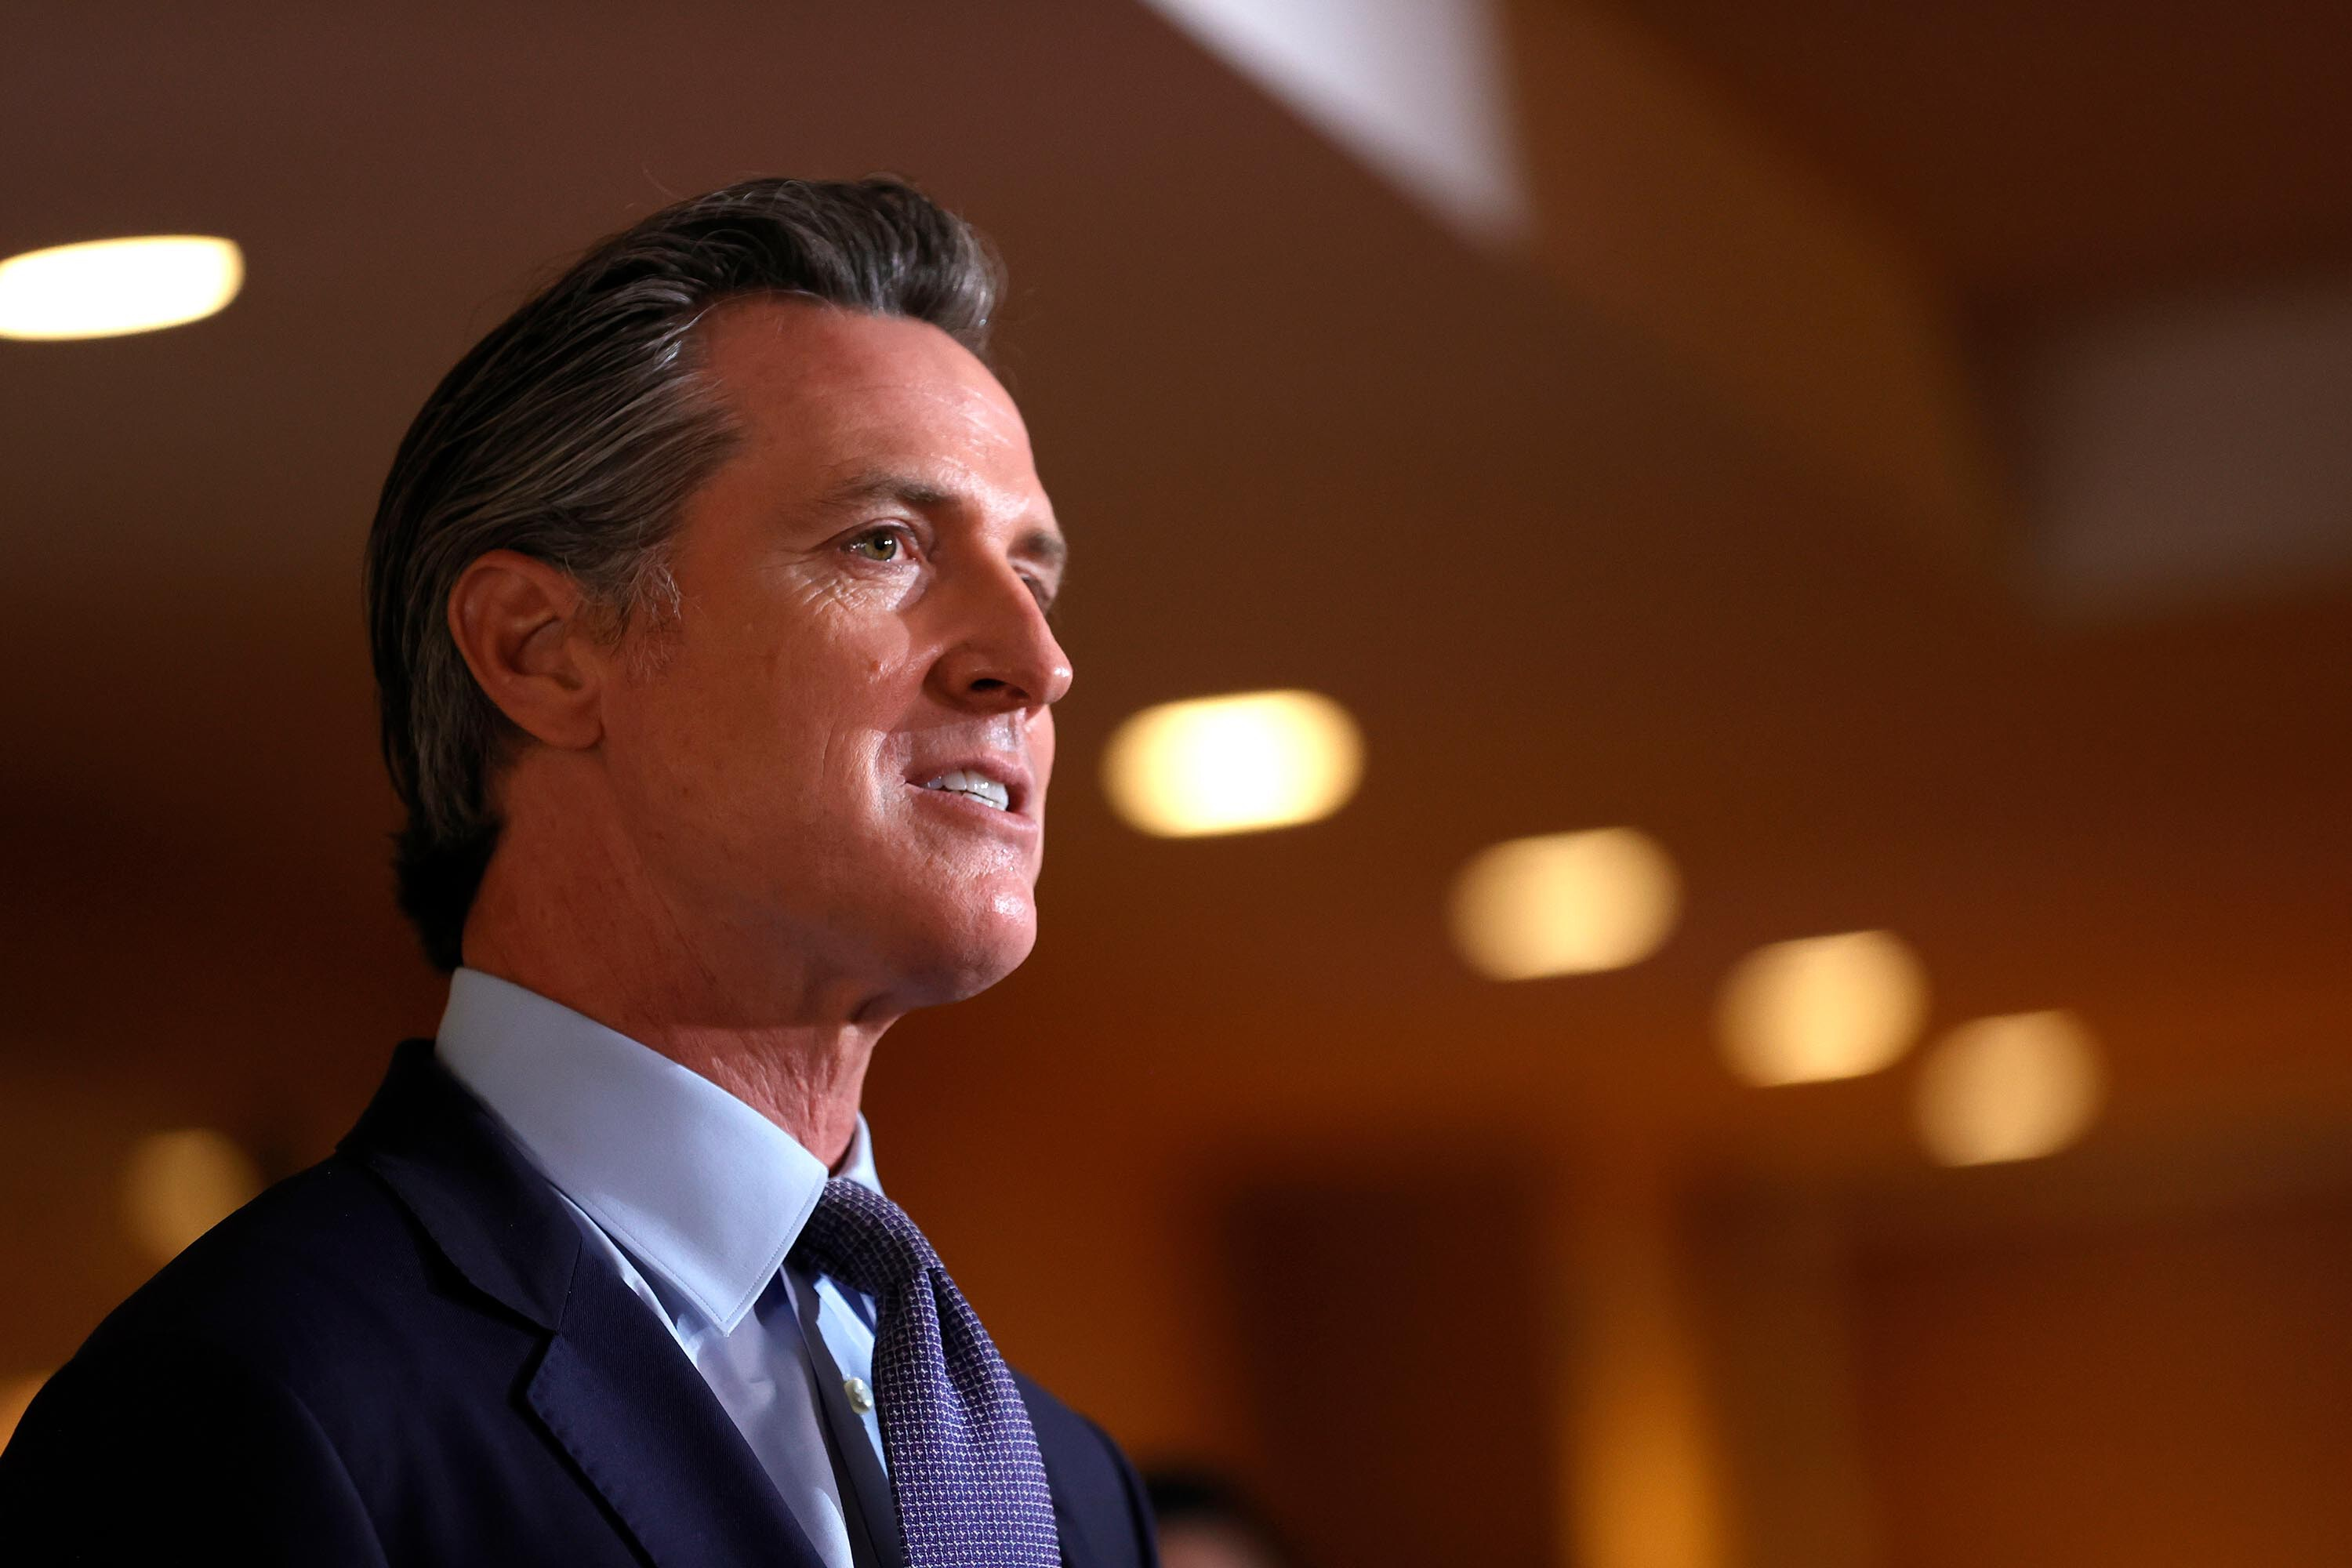 Newsom stands behind Biden's new Covid vaccine requirements as he fights California recall